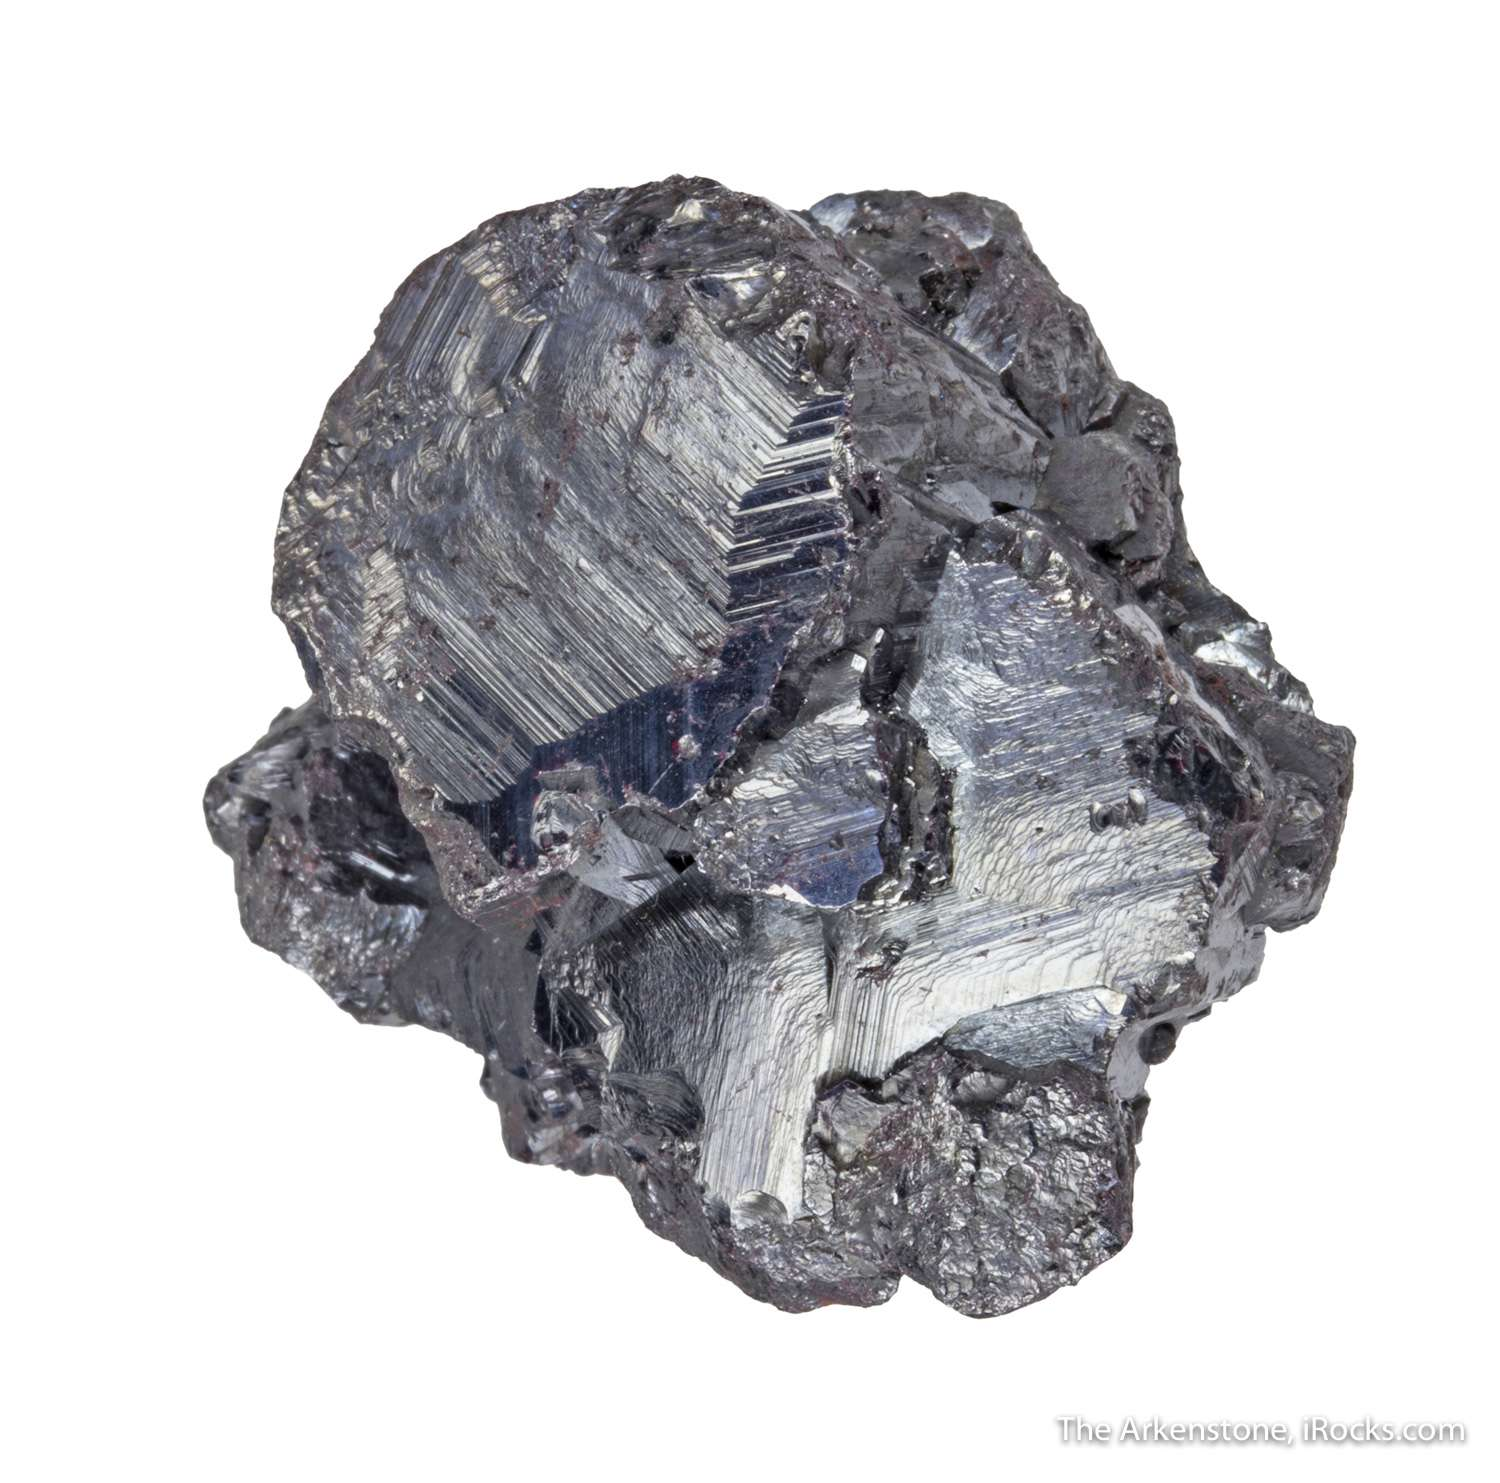 This huge crystal shield like termination inch perched amidst massive